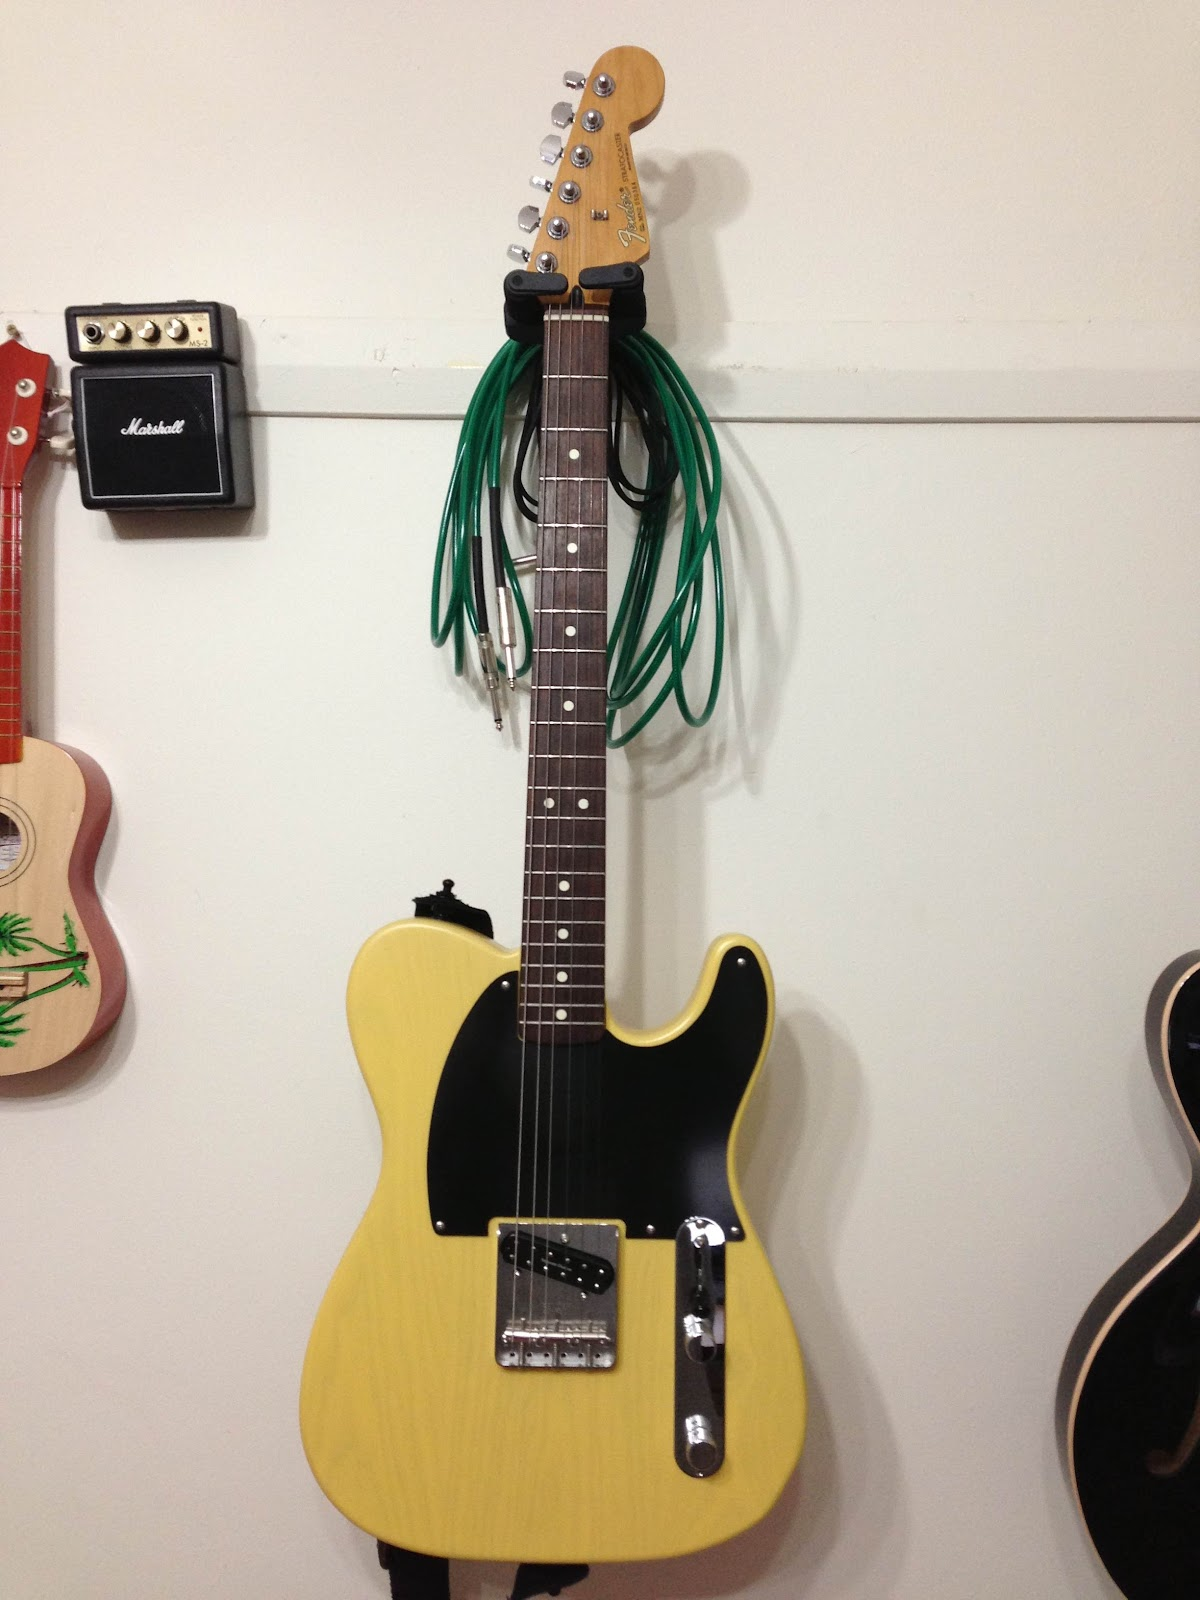 Fender Telecaster Wiring Diagram Furthermore Satellite Multiswitch